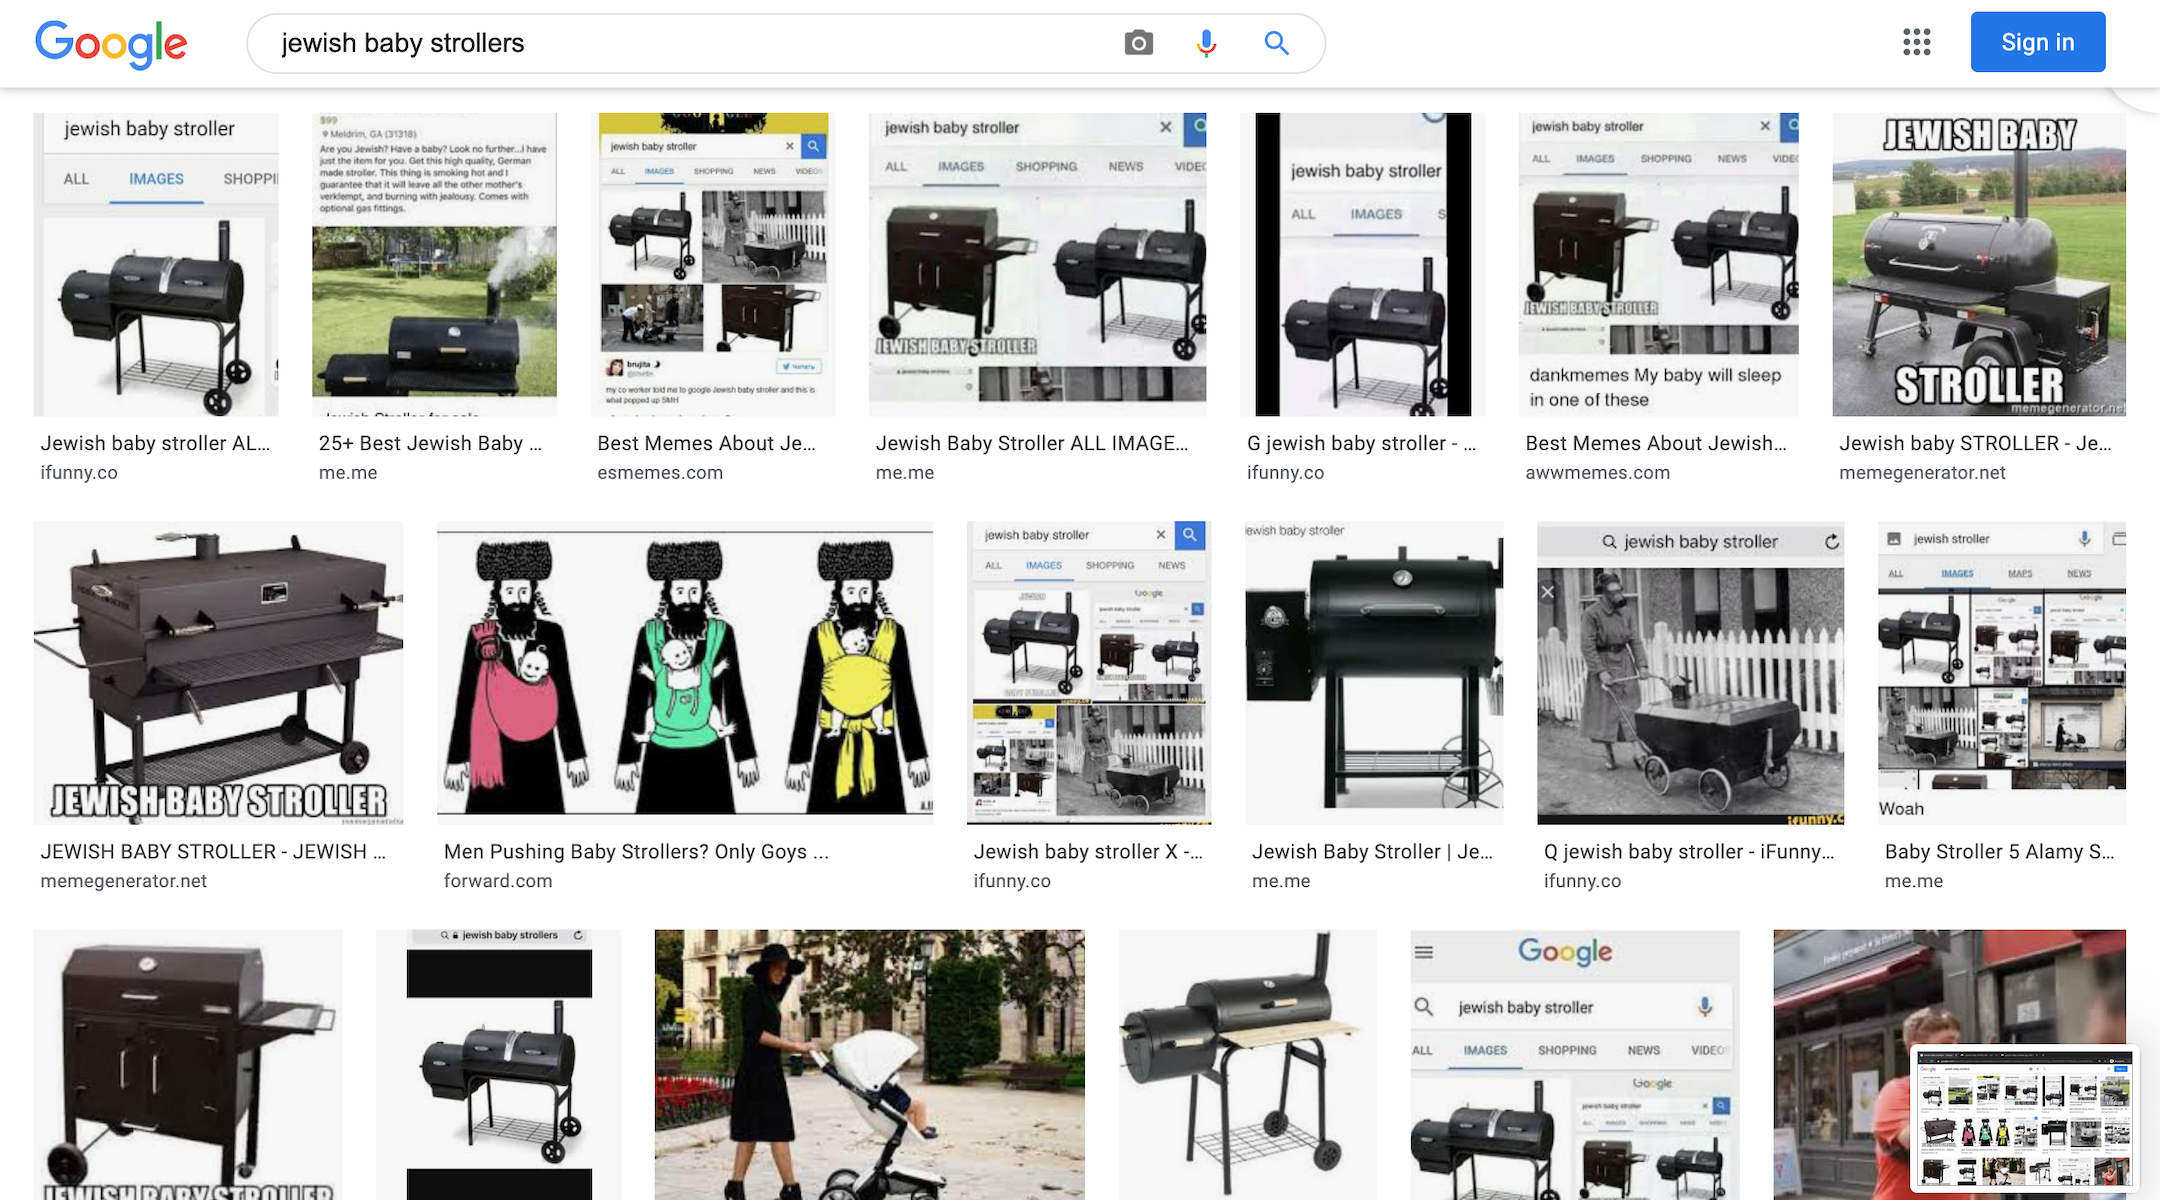 A Google search for 'Jewish baby strollers' yields anti-Semitic images. An extremist campaign may be...